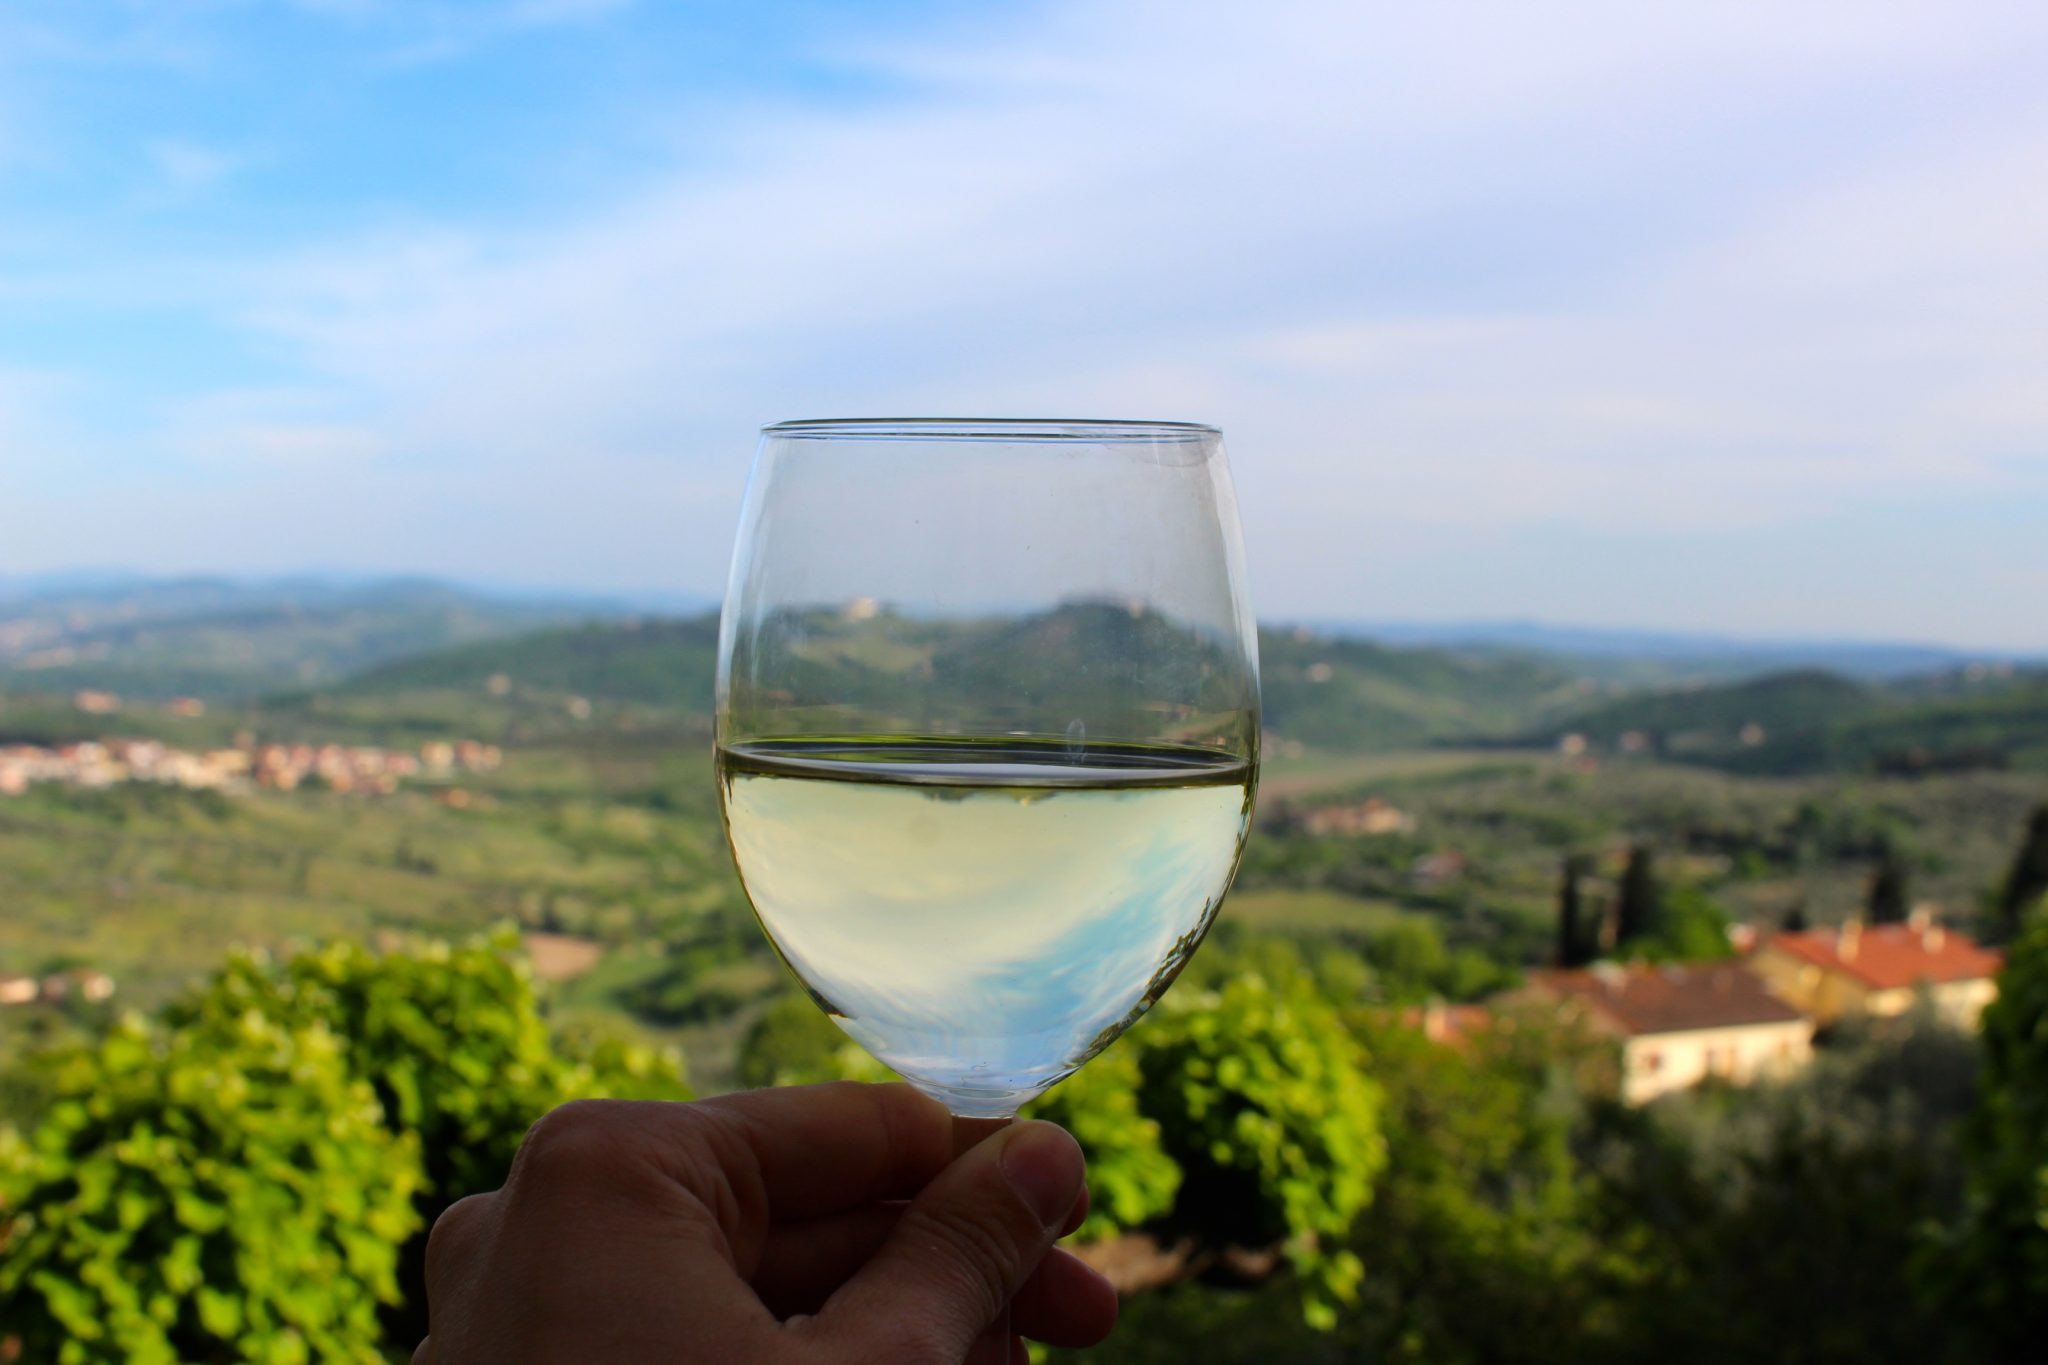 Drinking Wine at our B&B La Rocca in Carmignano, Tuscany (Italy)